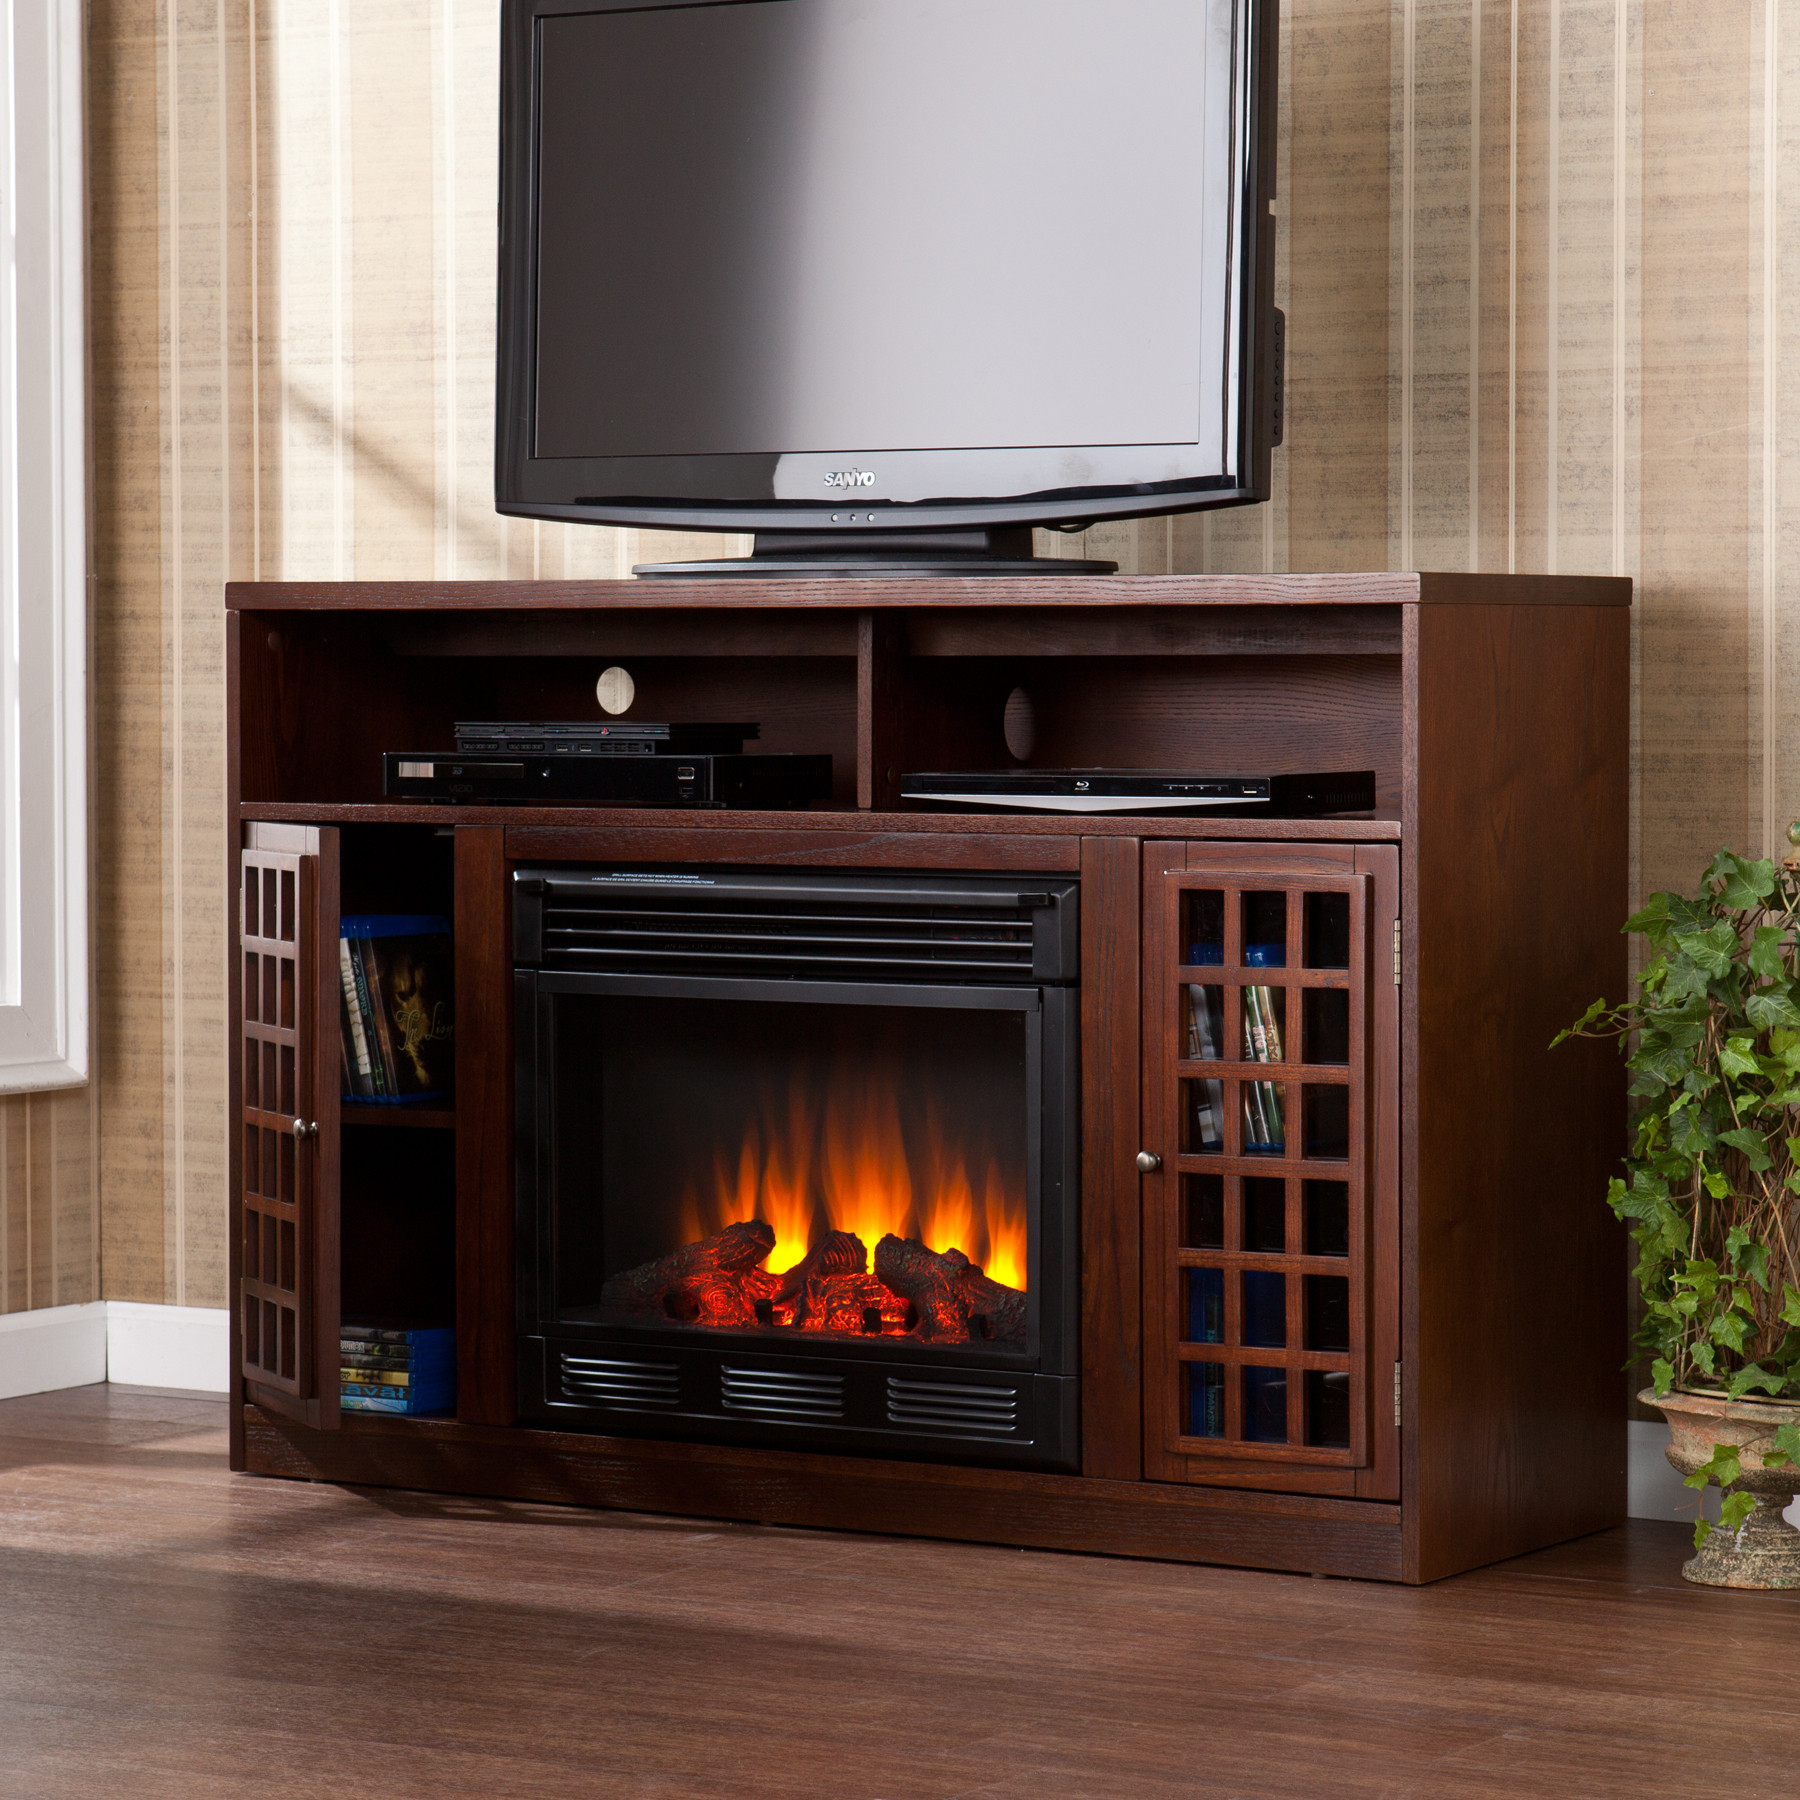 Electric Fireplace Tv Stand Menards  Awesome Menards Fireplace Tv Stand 7 Electric Fireplace